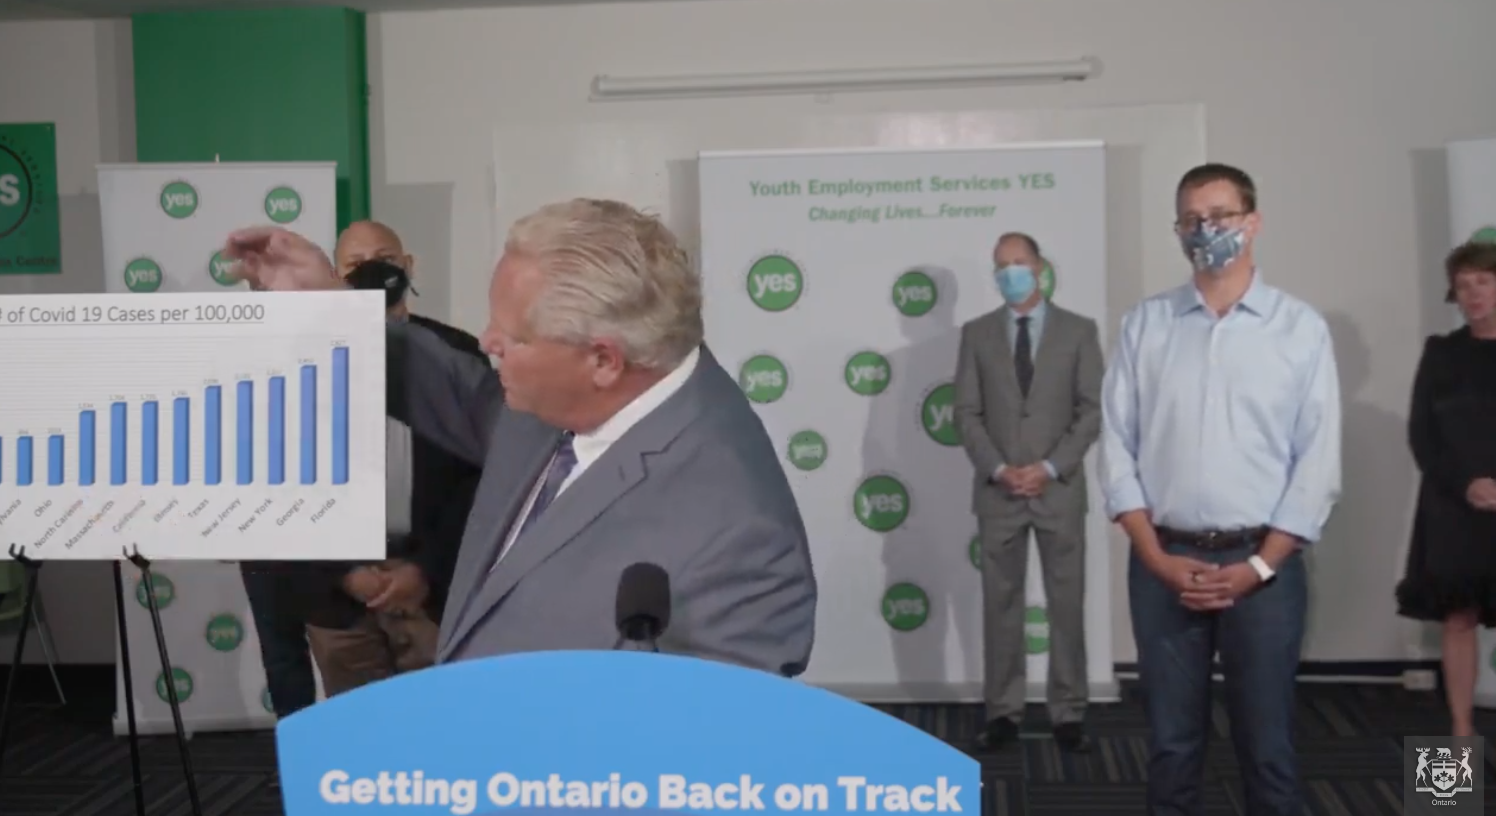 'This is not a victory lap': Your Ontario COVID-19 roundup